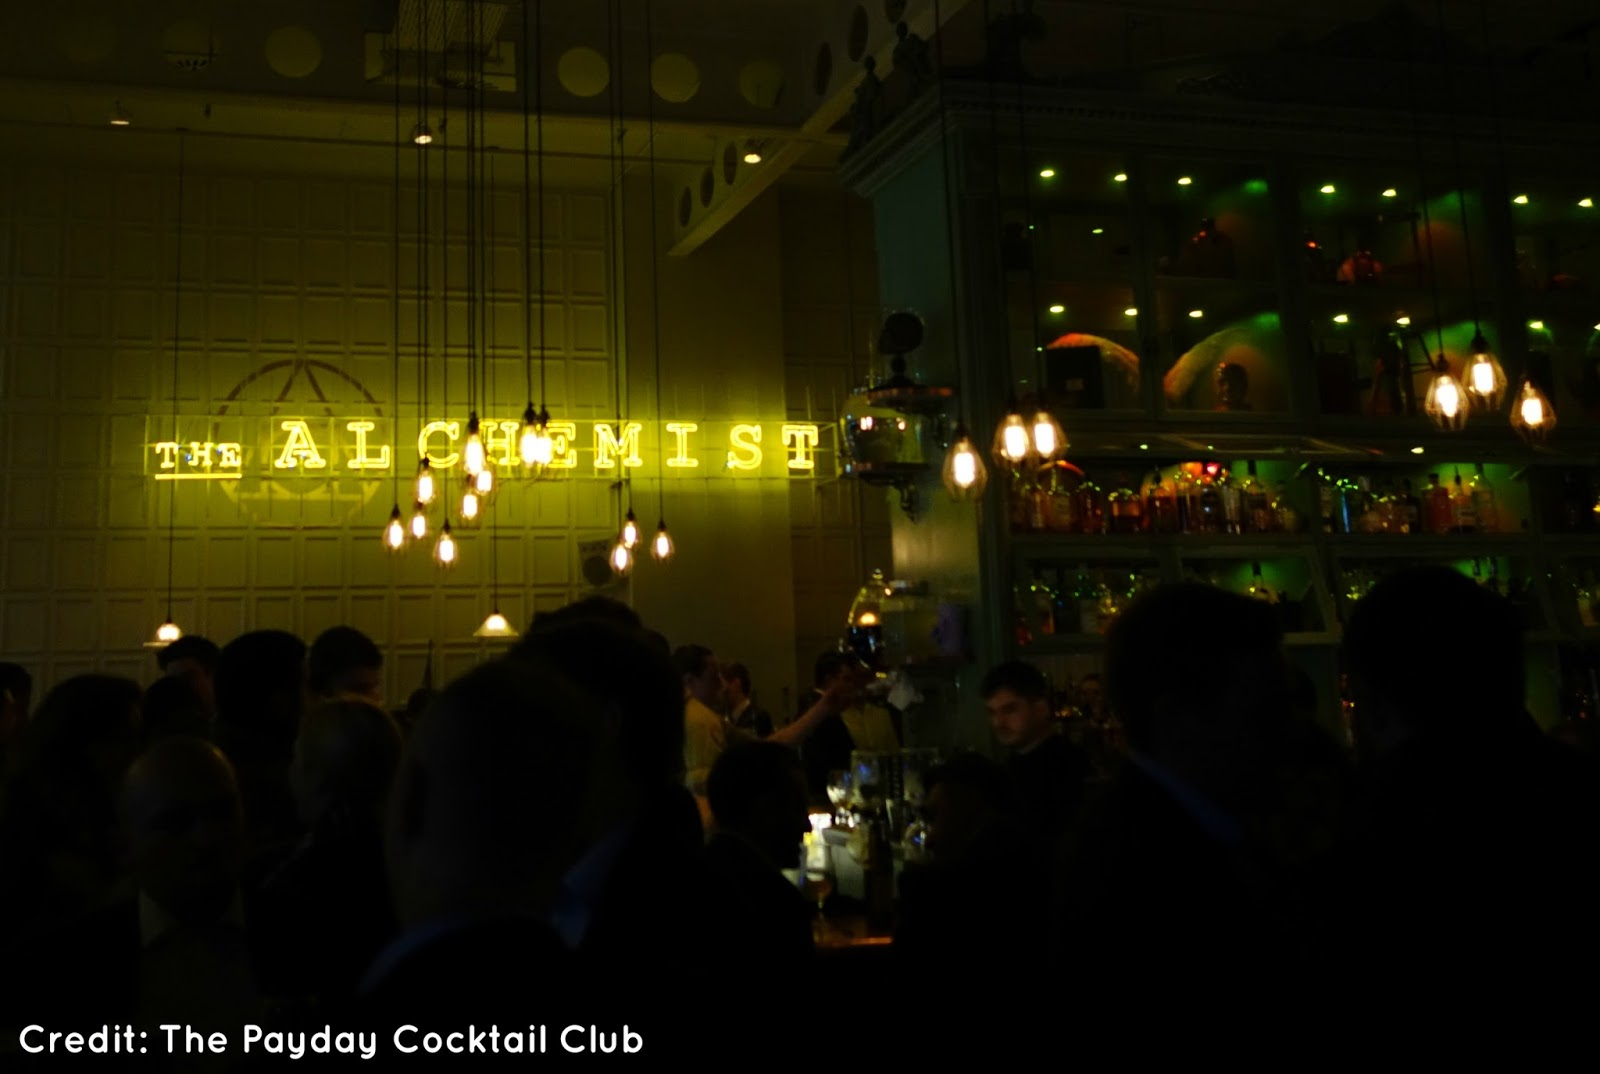 the payday cocktail club the alchemist cocktail bar review the alchemist cocktail bar review